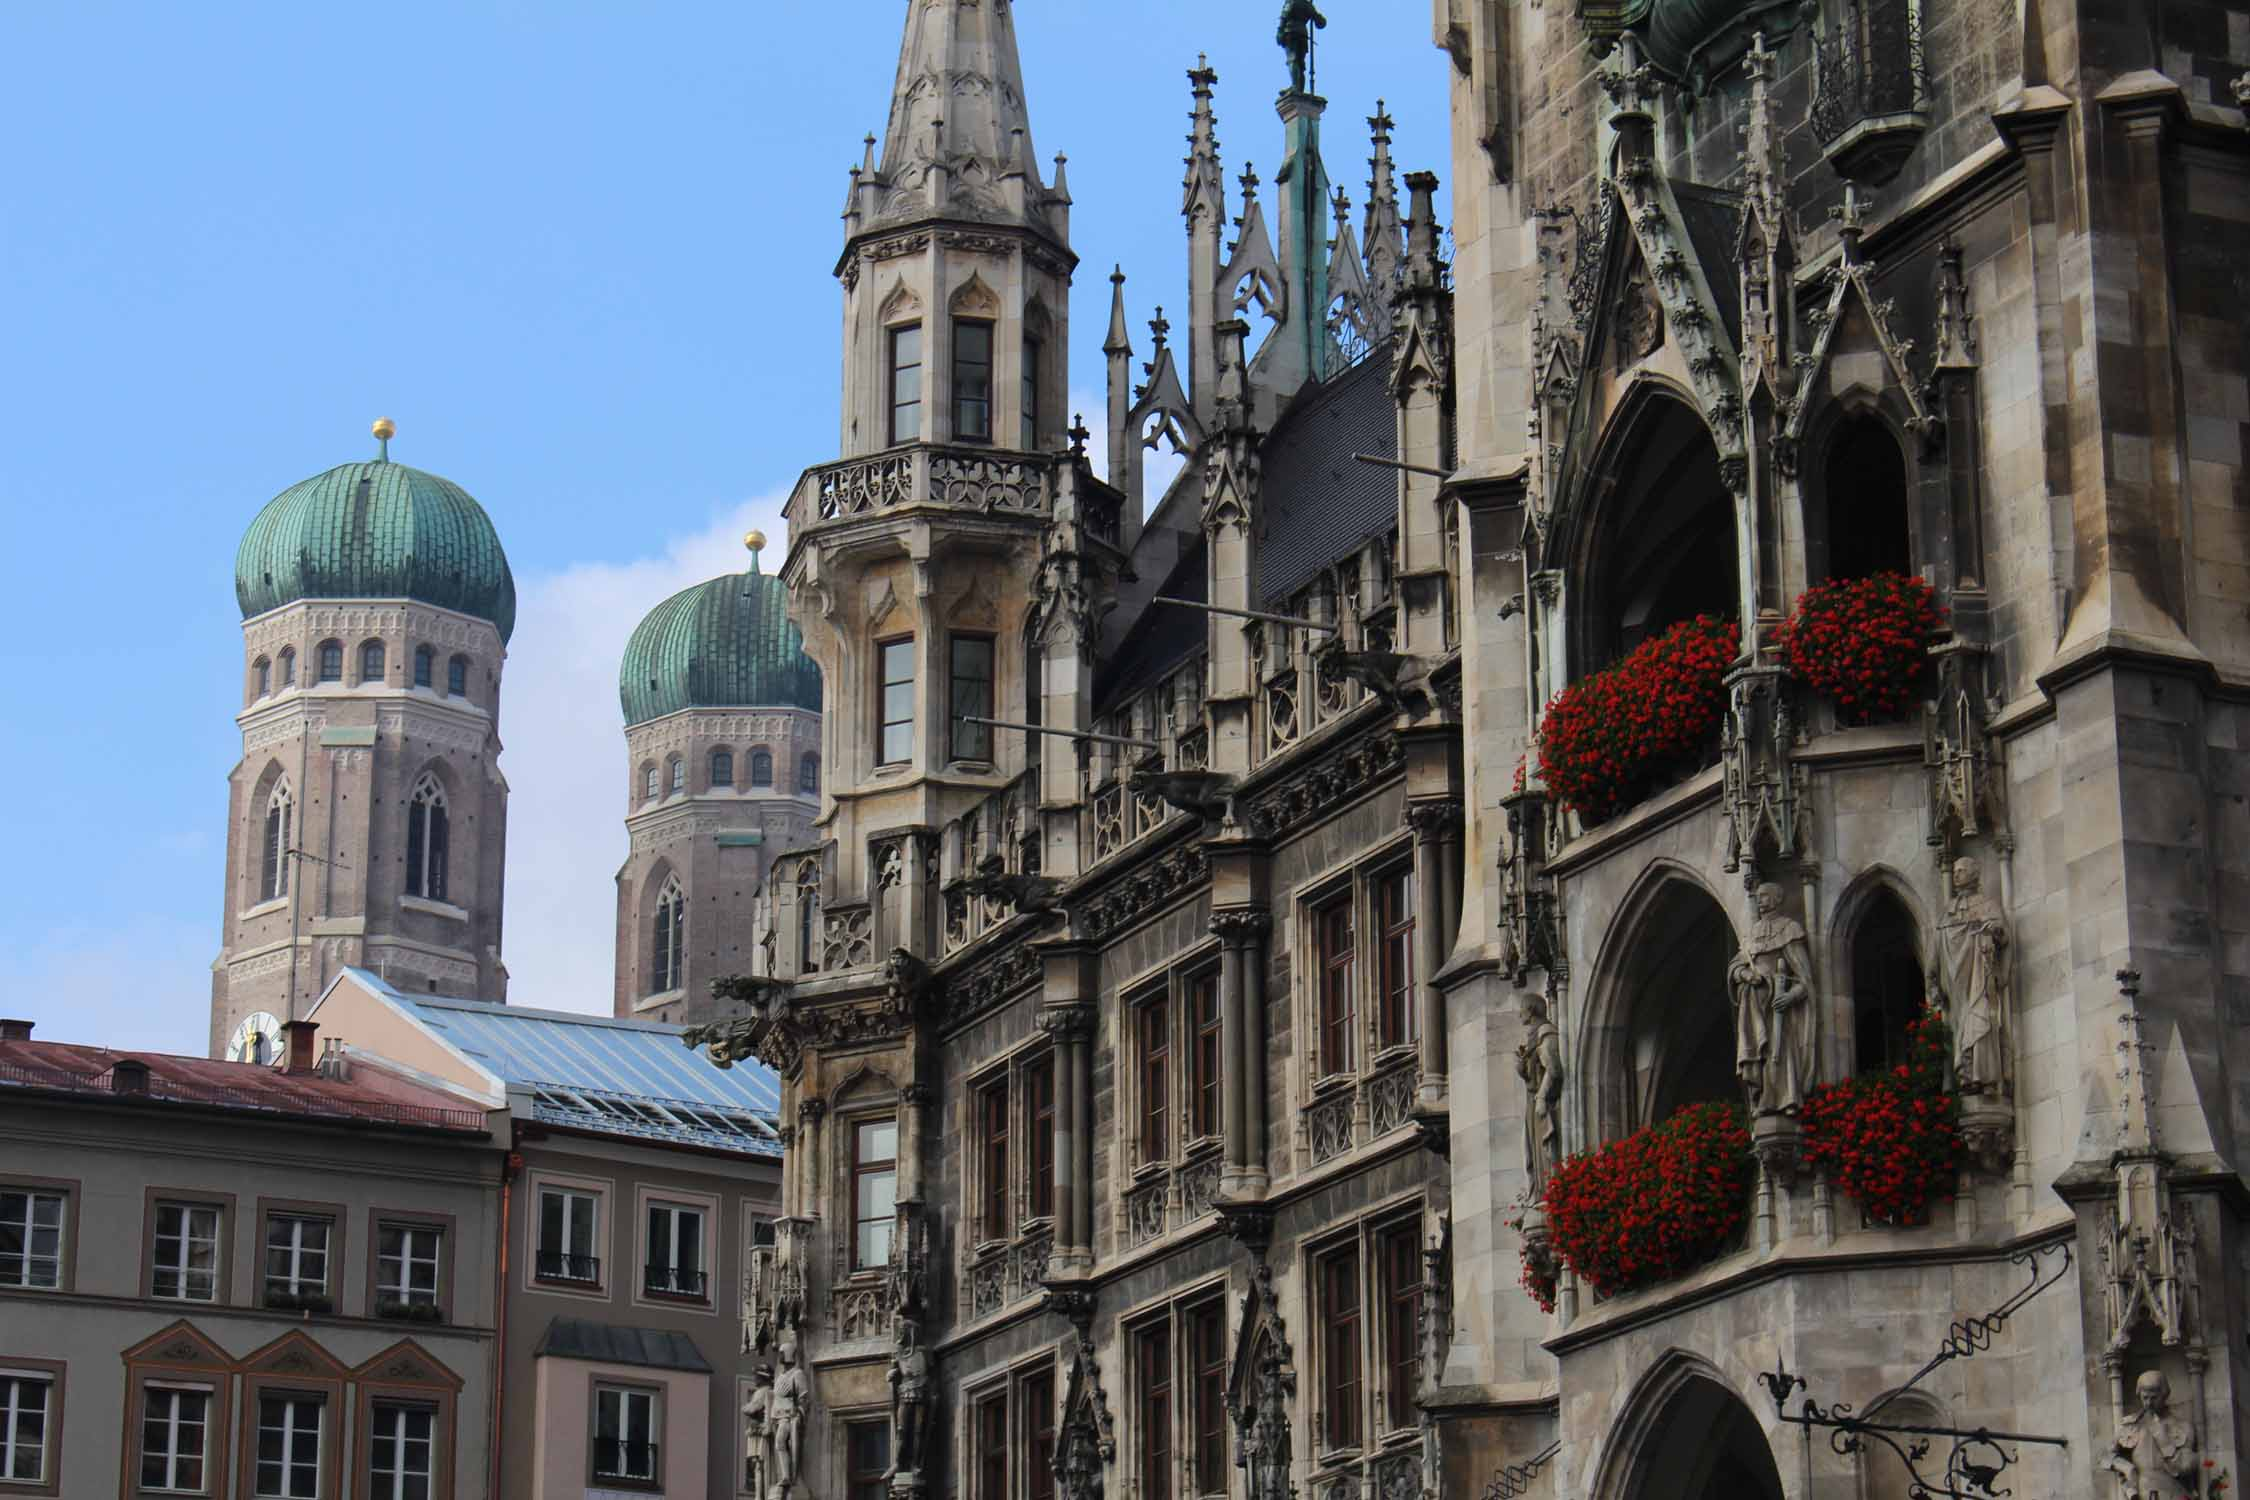 Details of the city hall of Munich.